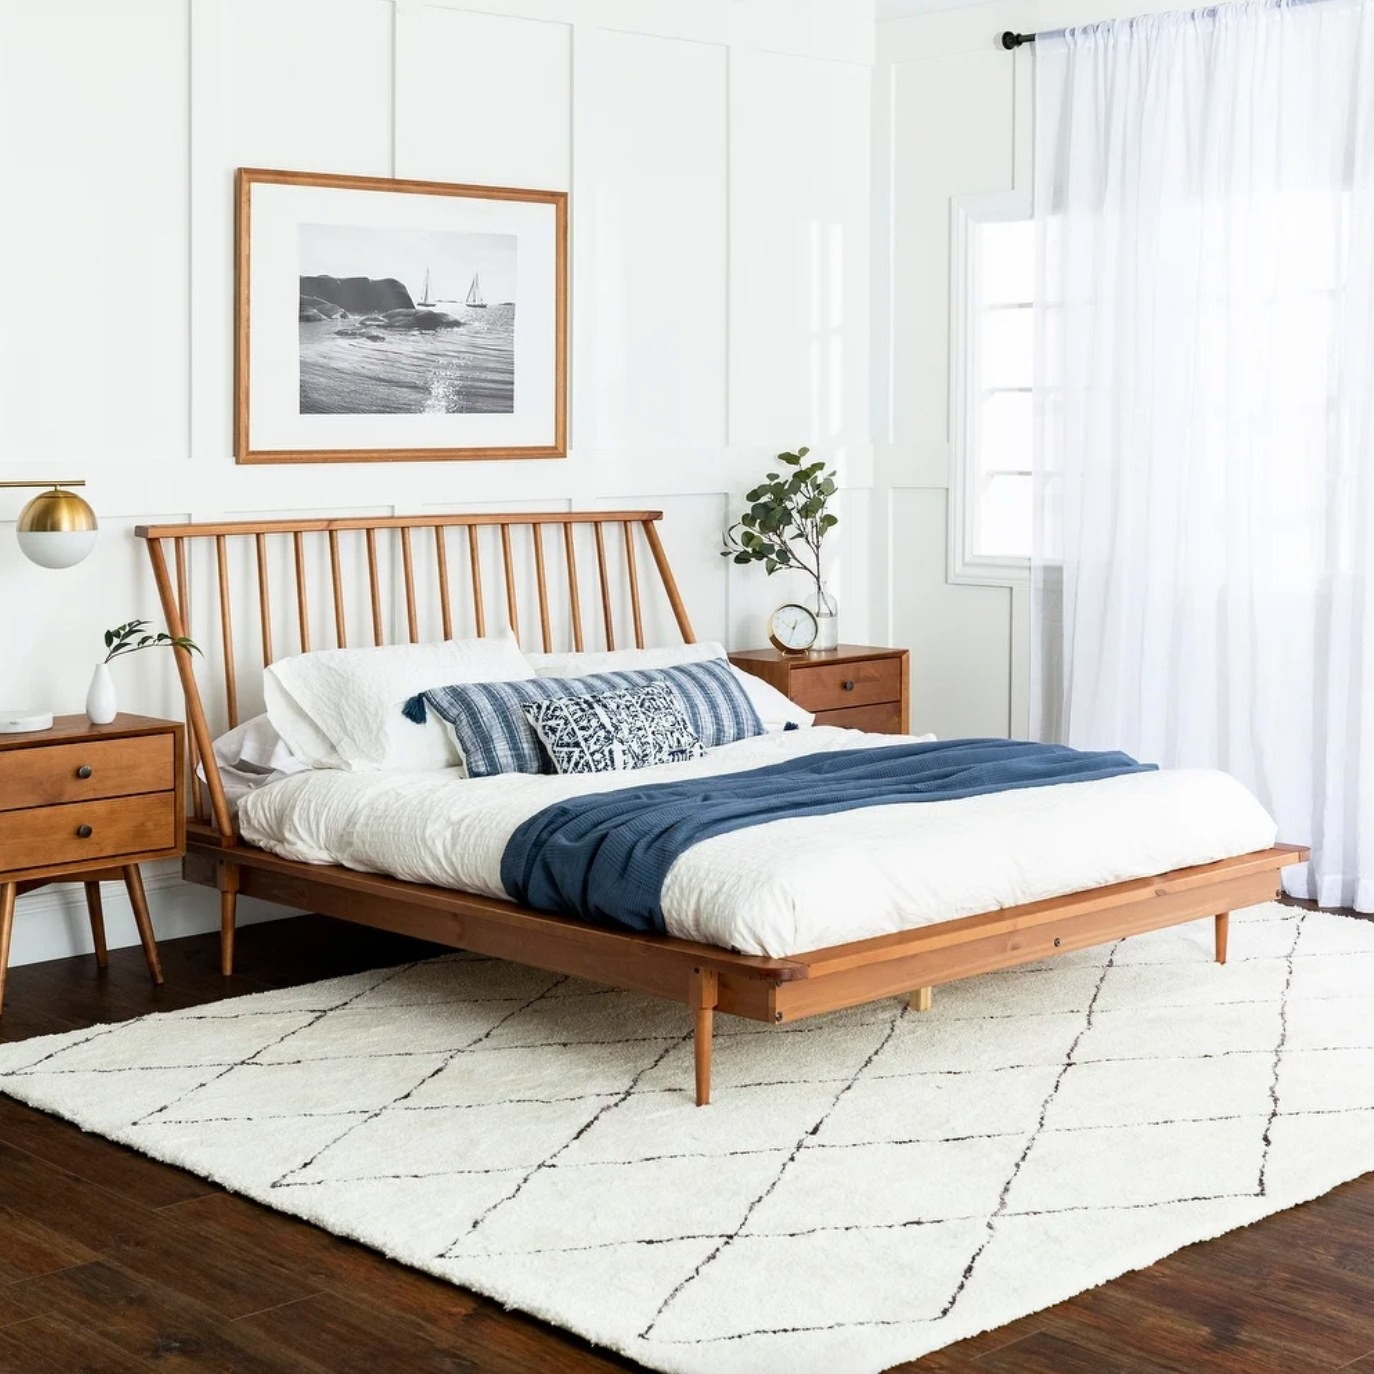 The pine wood spindle bed in caramel